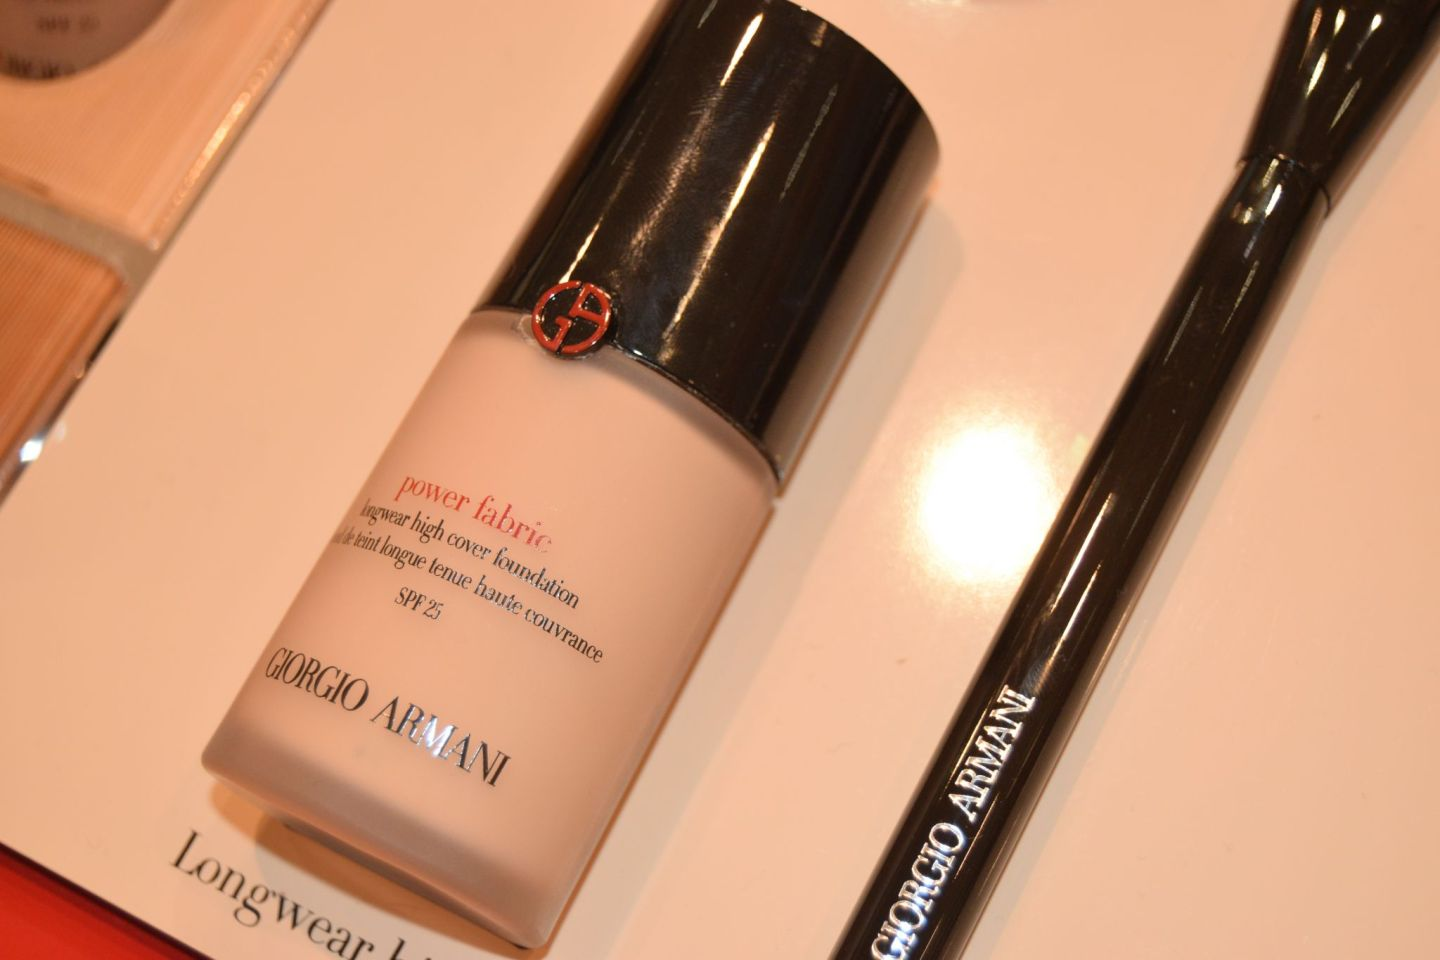 GIORGIO ARMANI: Powder Fabric Foundation Review